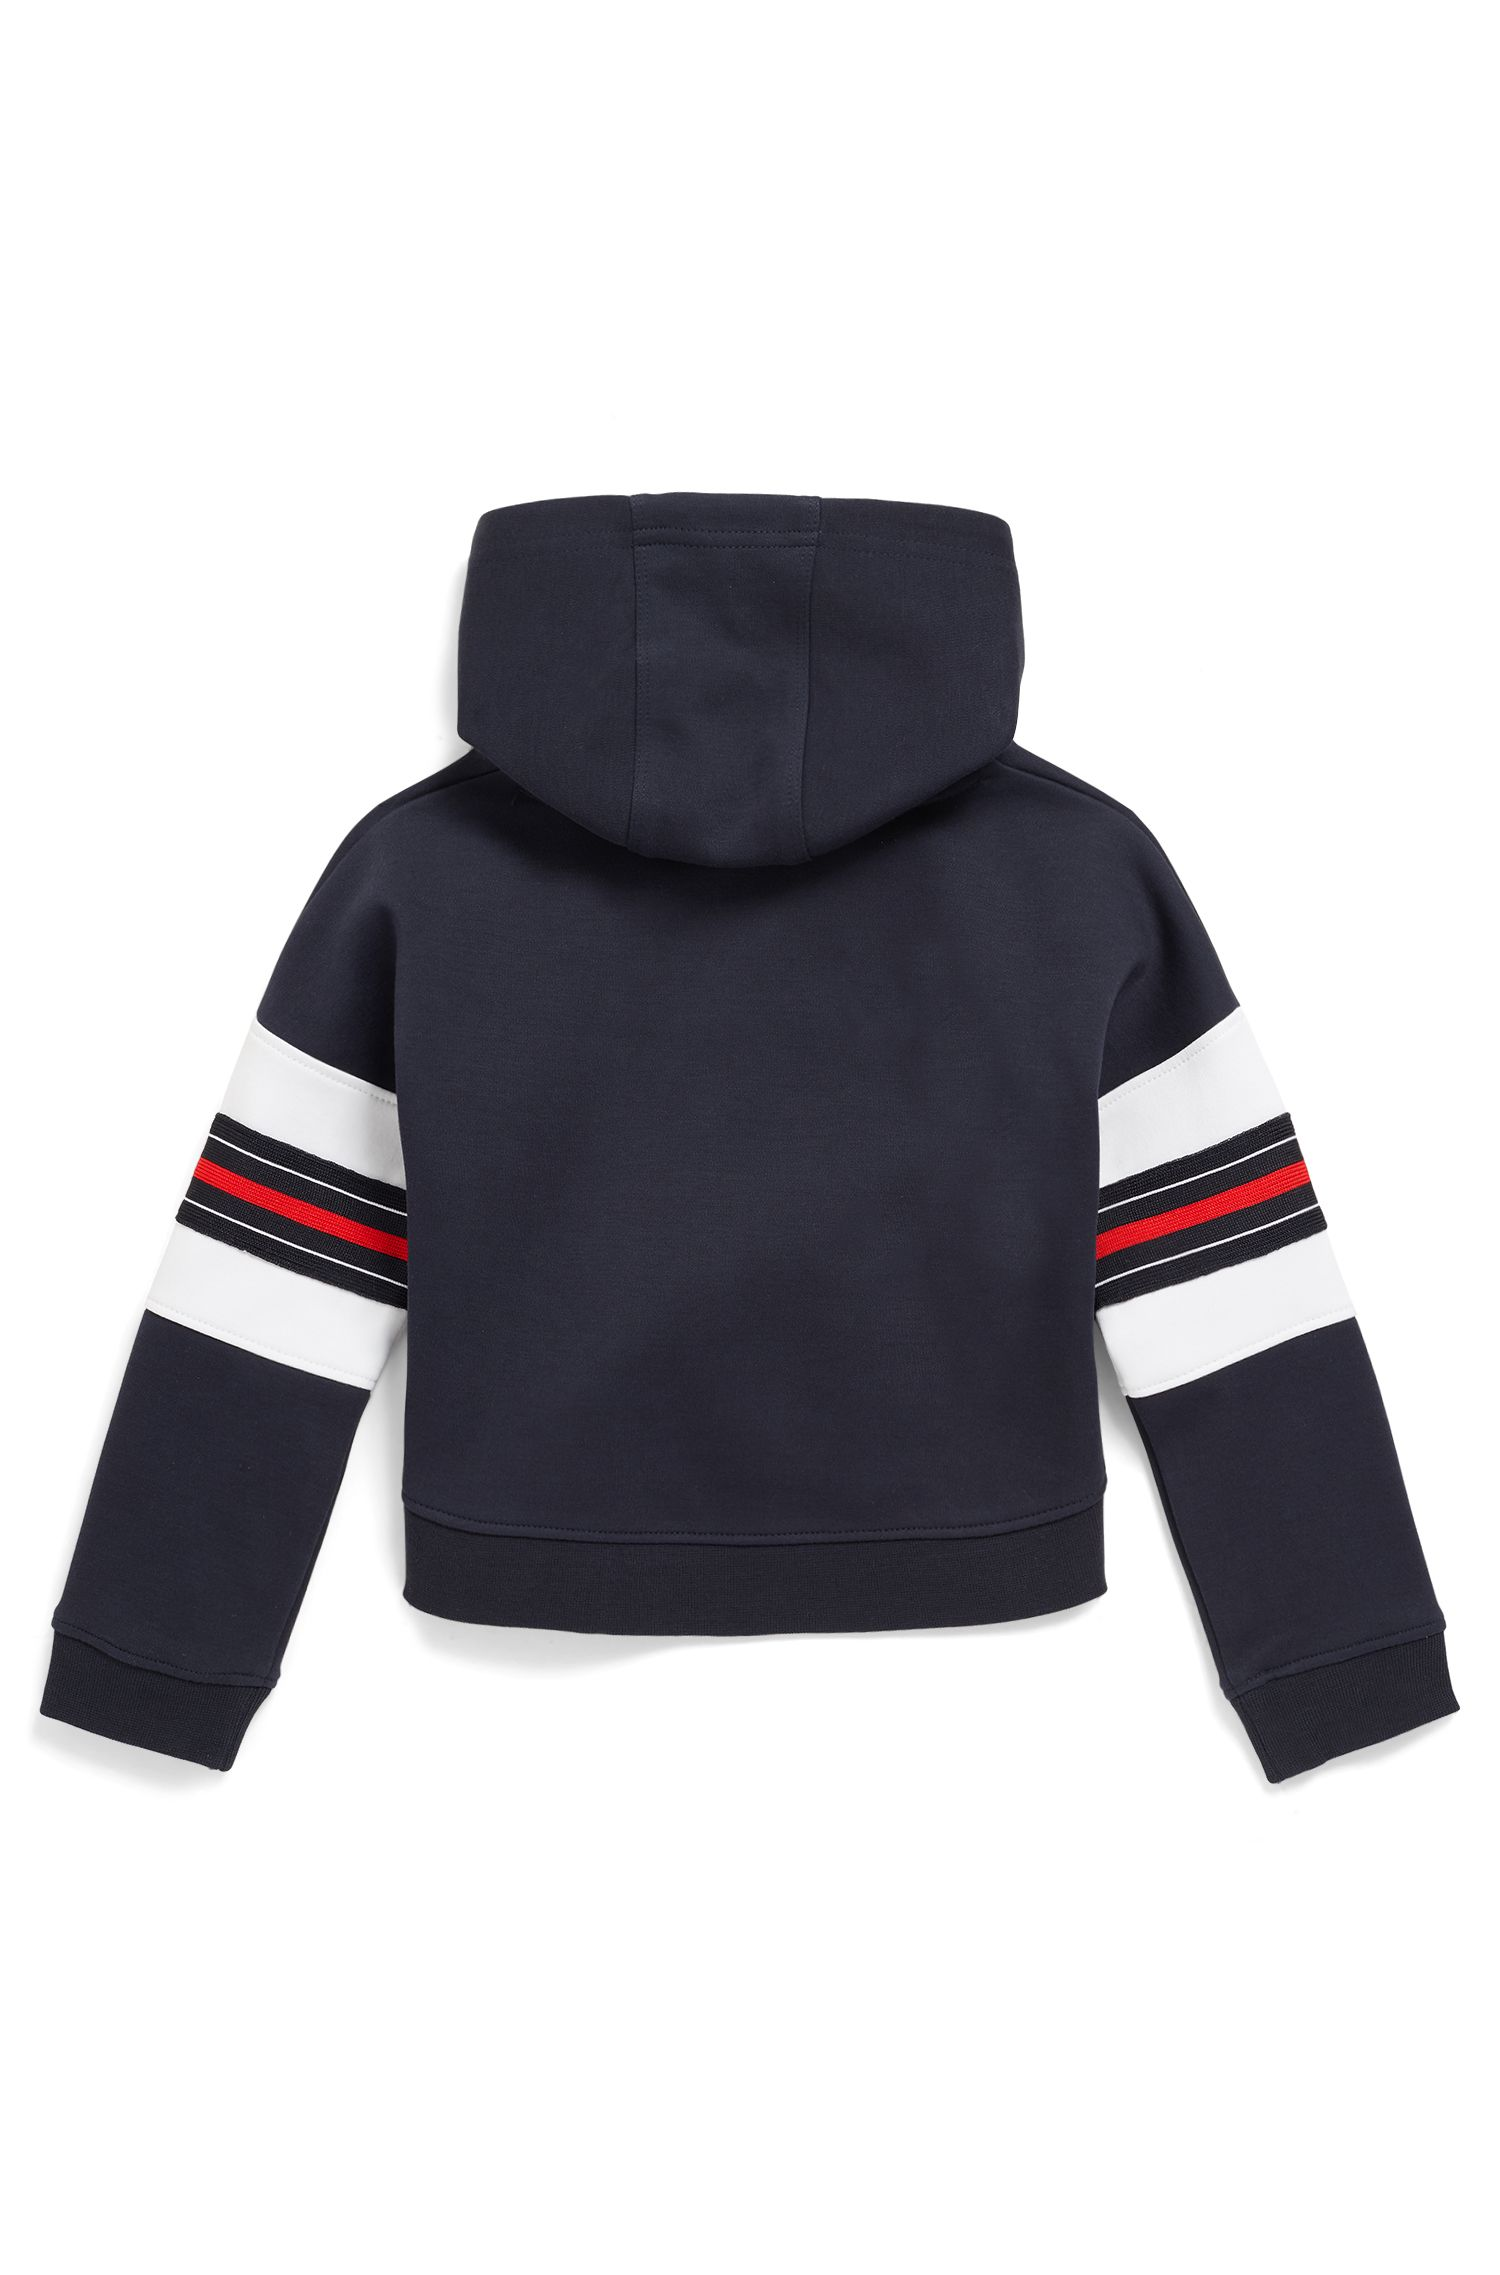 Kids' hoodie with logo and stripe detailing, Dark Blue